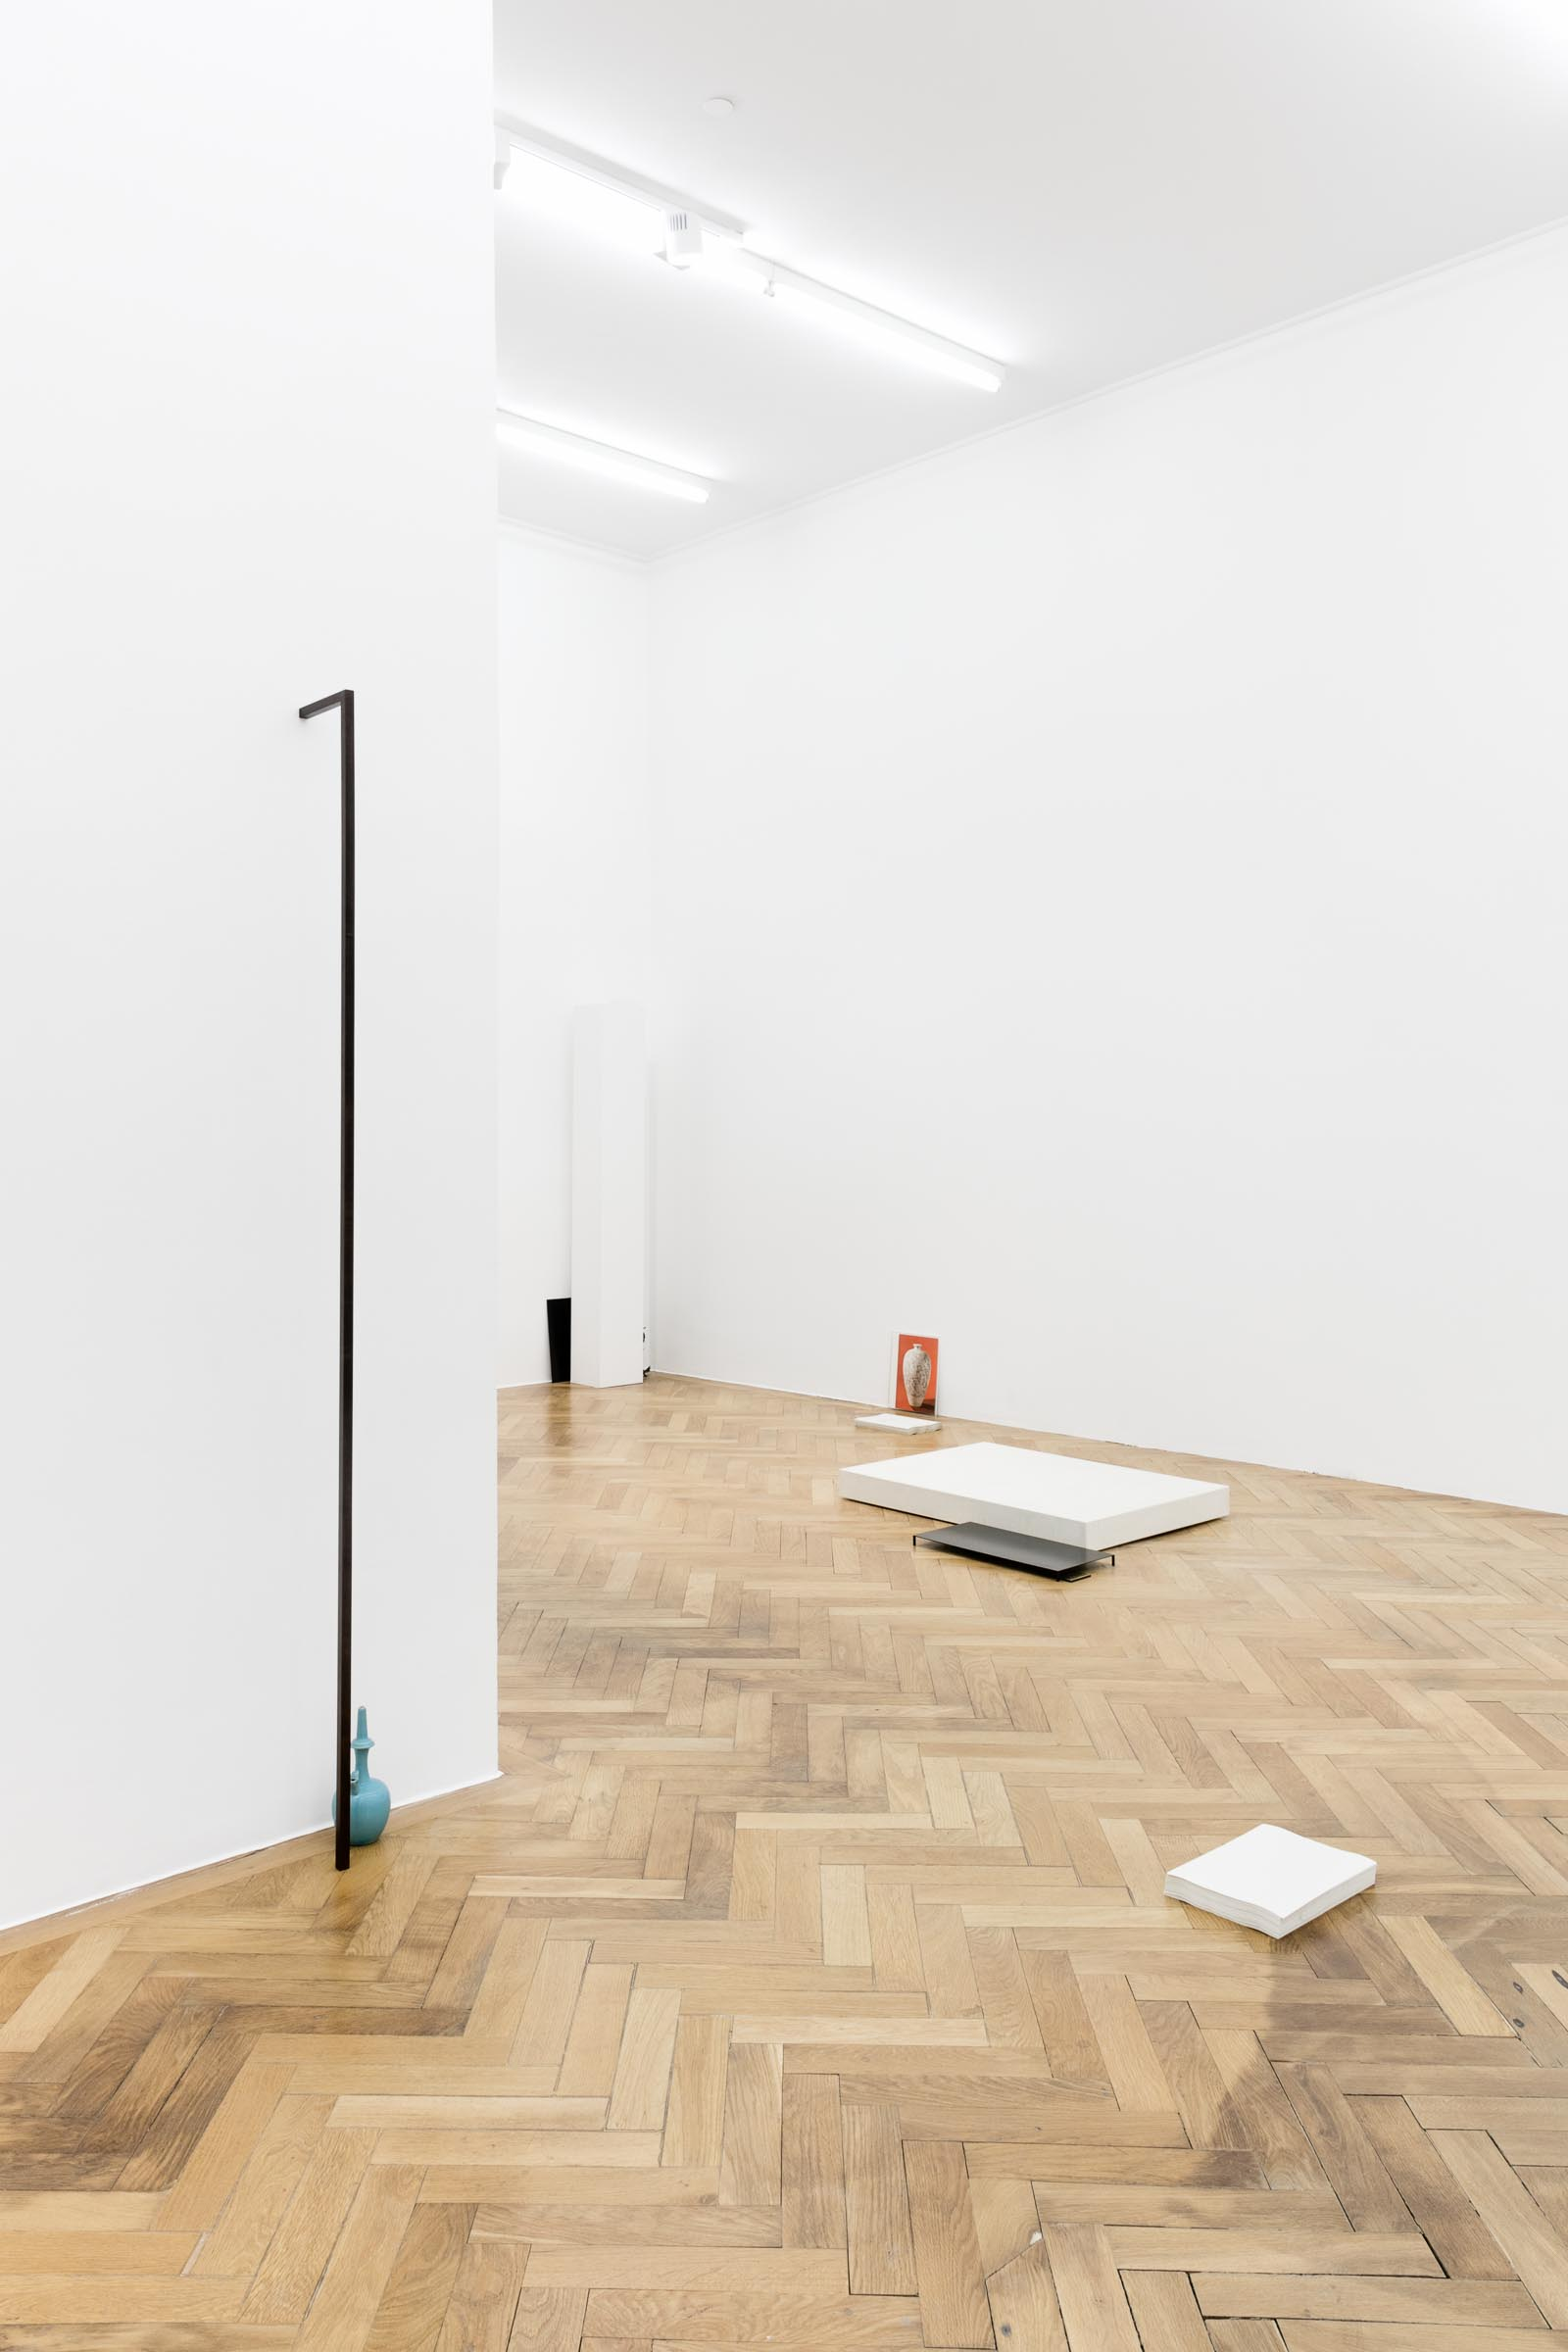 Haris Epaminonda & Daniel Gustav Cramer, An Autumn Afternoon, installation view